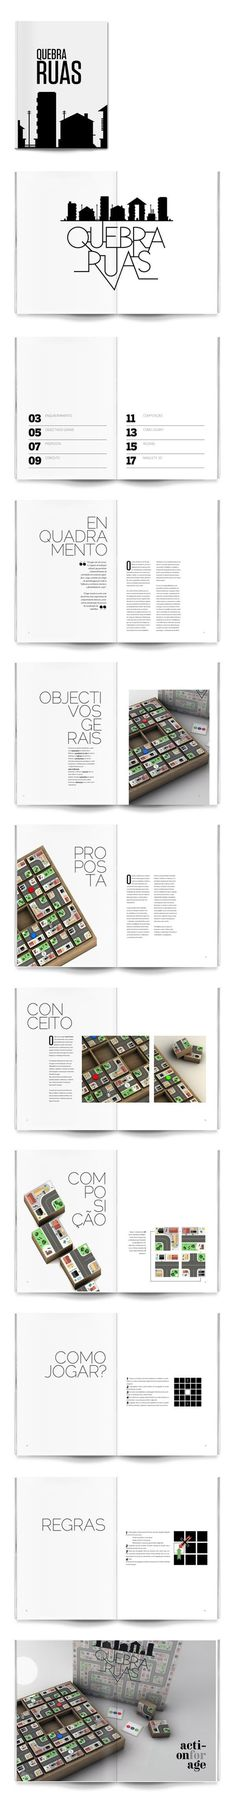 Layout. #print #graphic design #layout